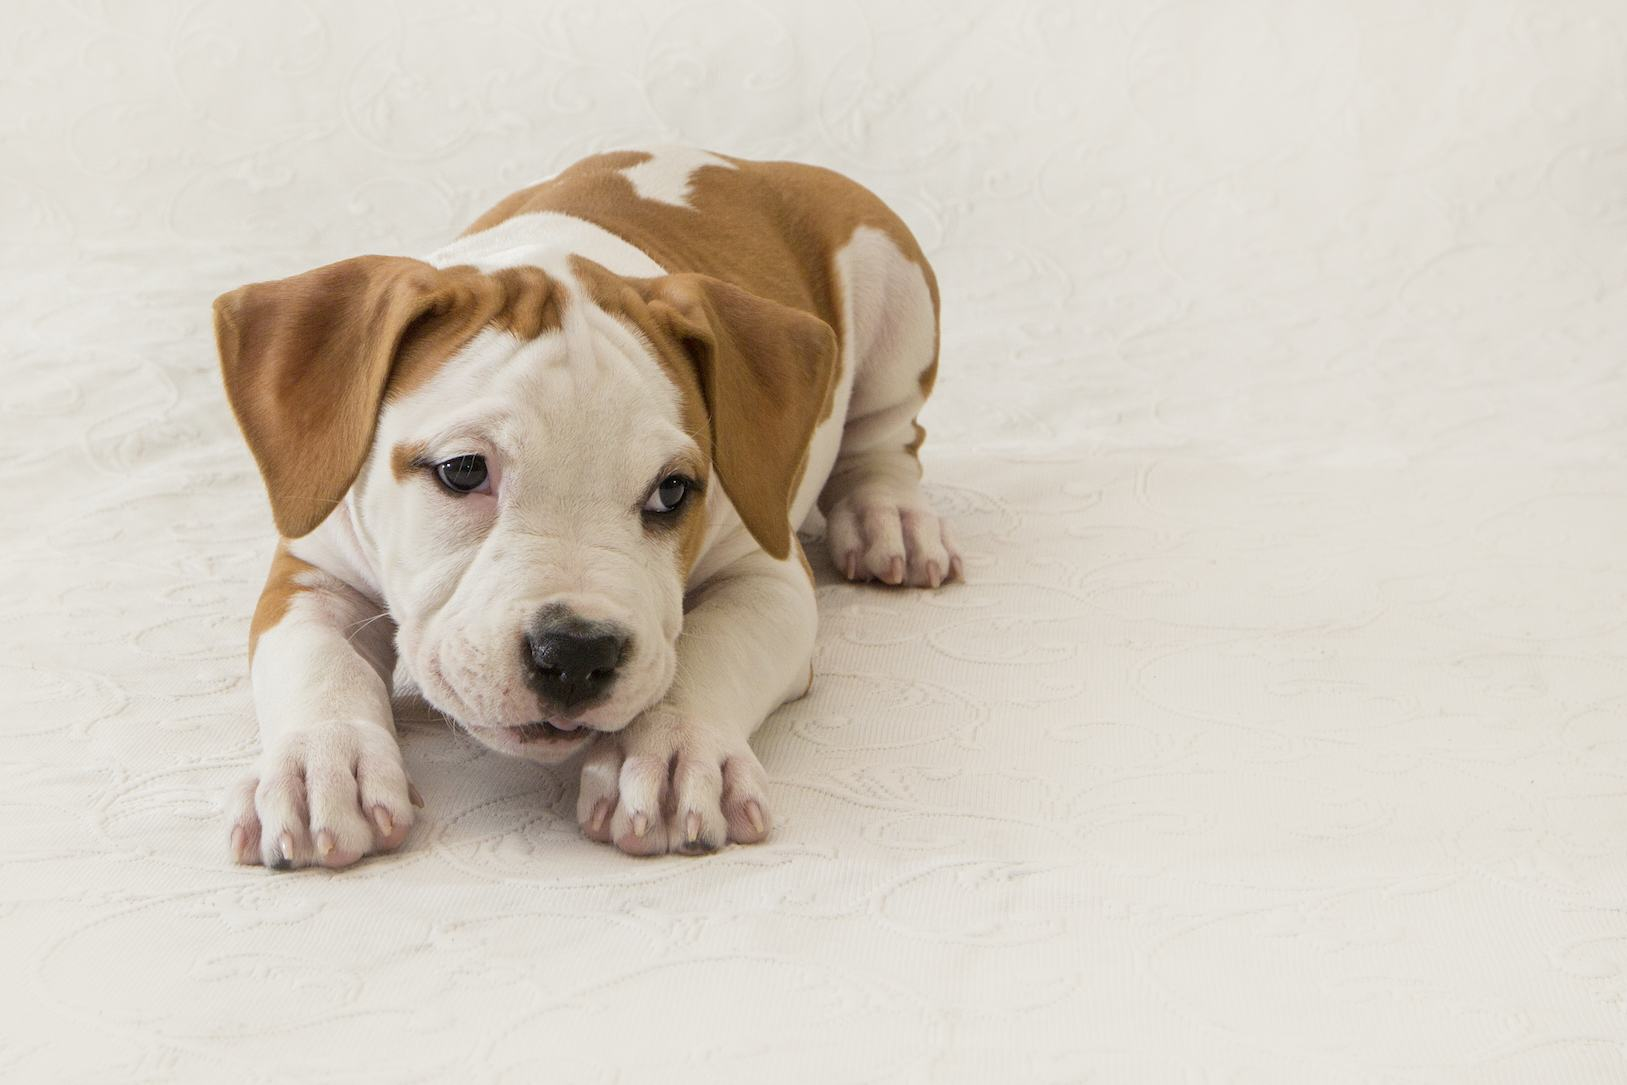 Cute puppy pitubull American Staffordshire Terrier isolated on white background. Close-up with space for copy